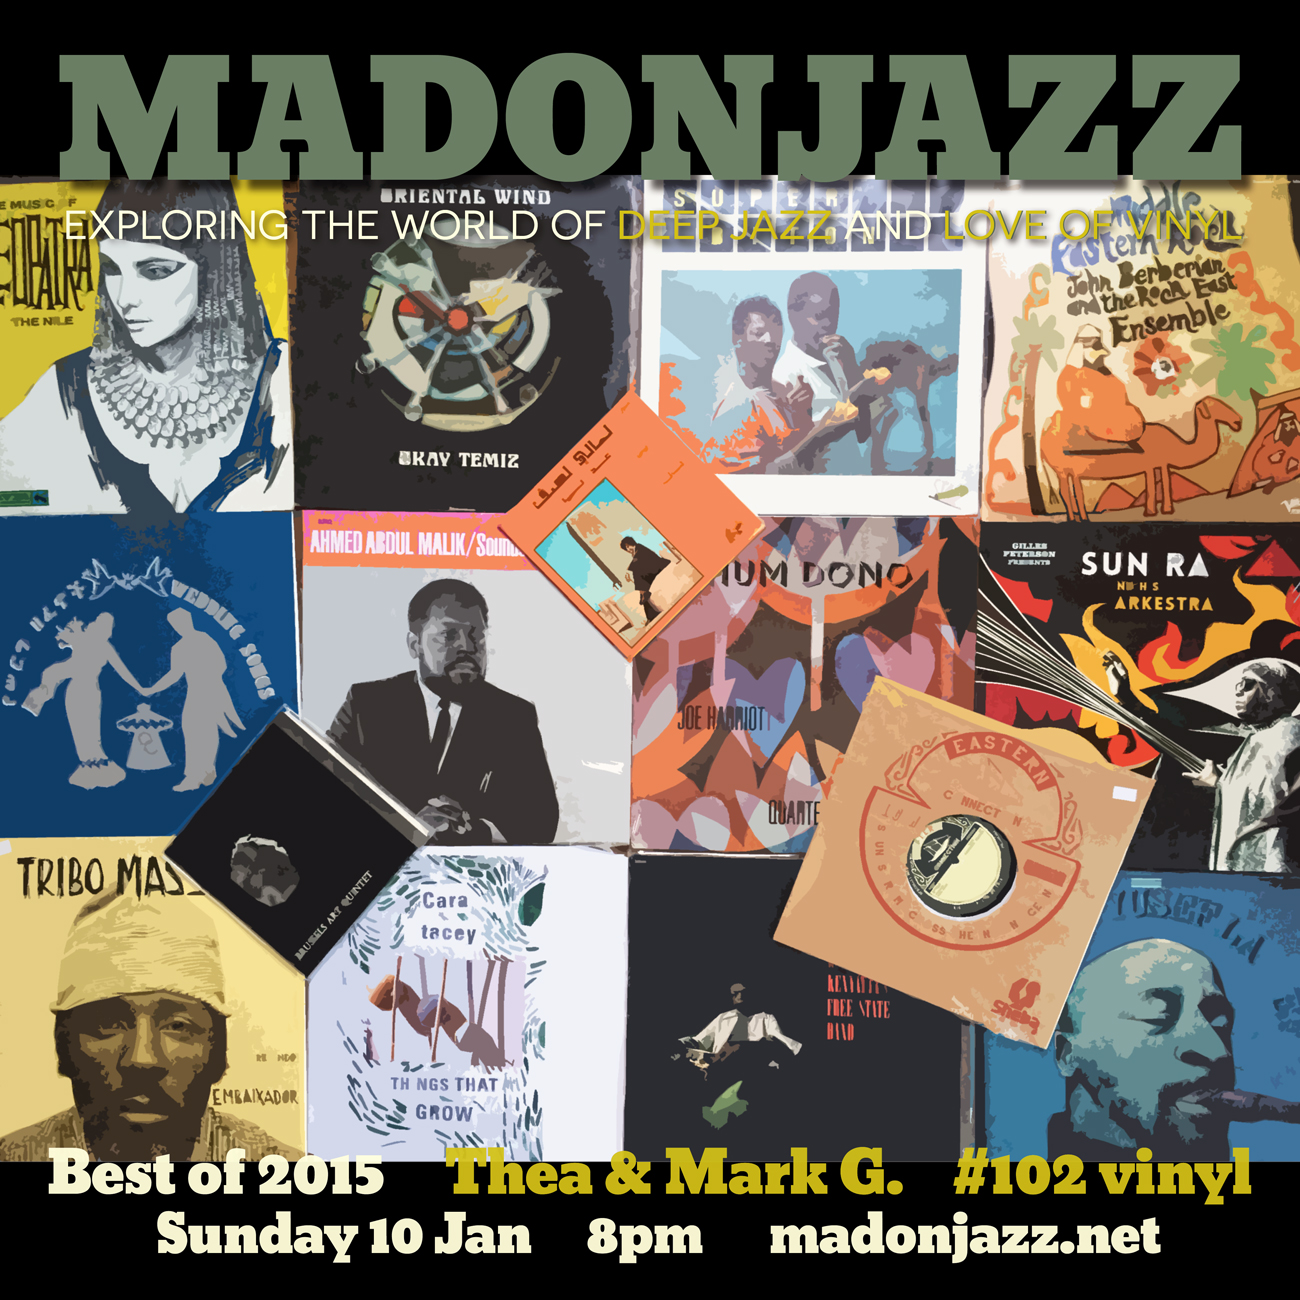 MADONJAZZ BEST OF 2015